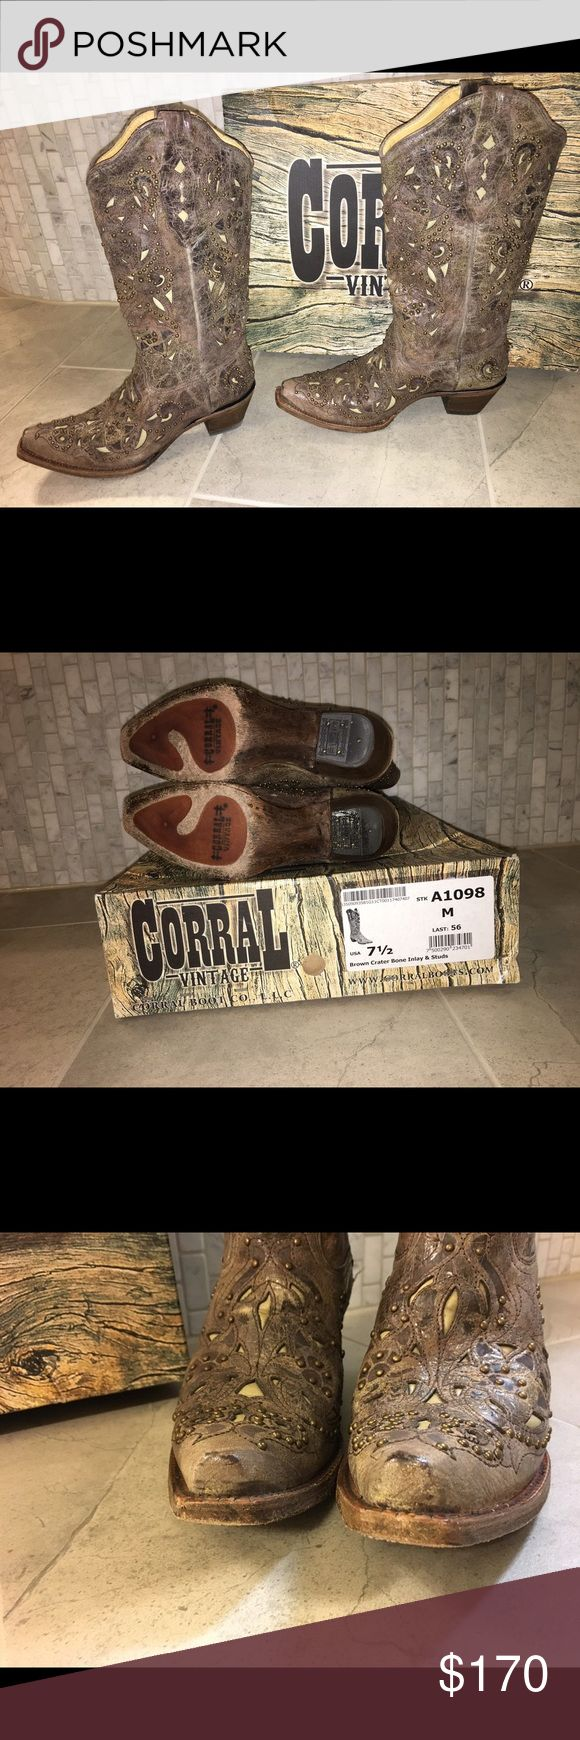 "Corral Vintage boots!  Cowgirl boots. Only worn once!  Minor scuff as pictured on the toes.  2"" western fashion heel. Hand crafted Brown Cowhide leather foot and shaft. Brown goat inlay and small bronze studs decorate boot in vintage style. Lightly cushioned Insole.  Looks great with dresses, skirts, shorts, and jeans!  Original box included. Boots have that new leather smell❤ corral Shoes Heeled Boots"